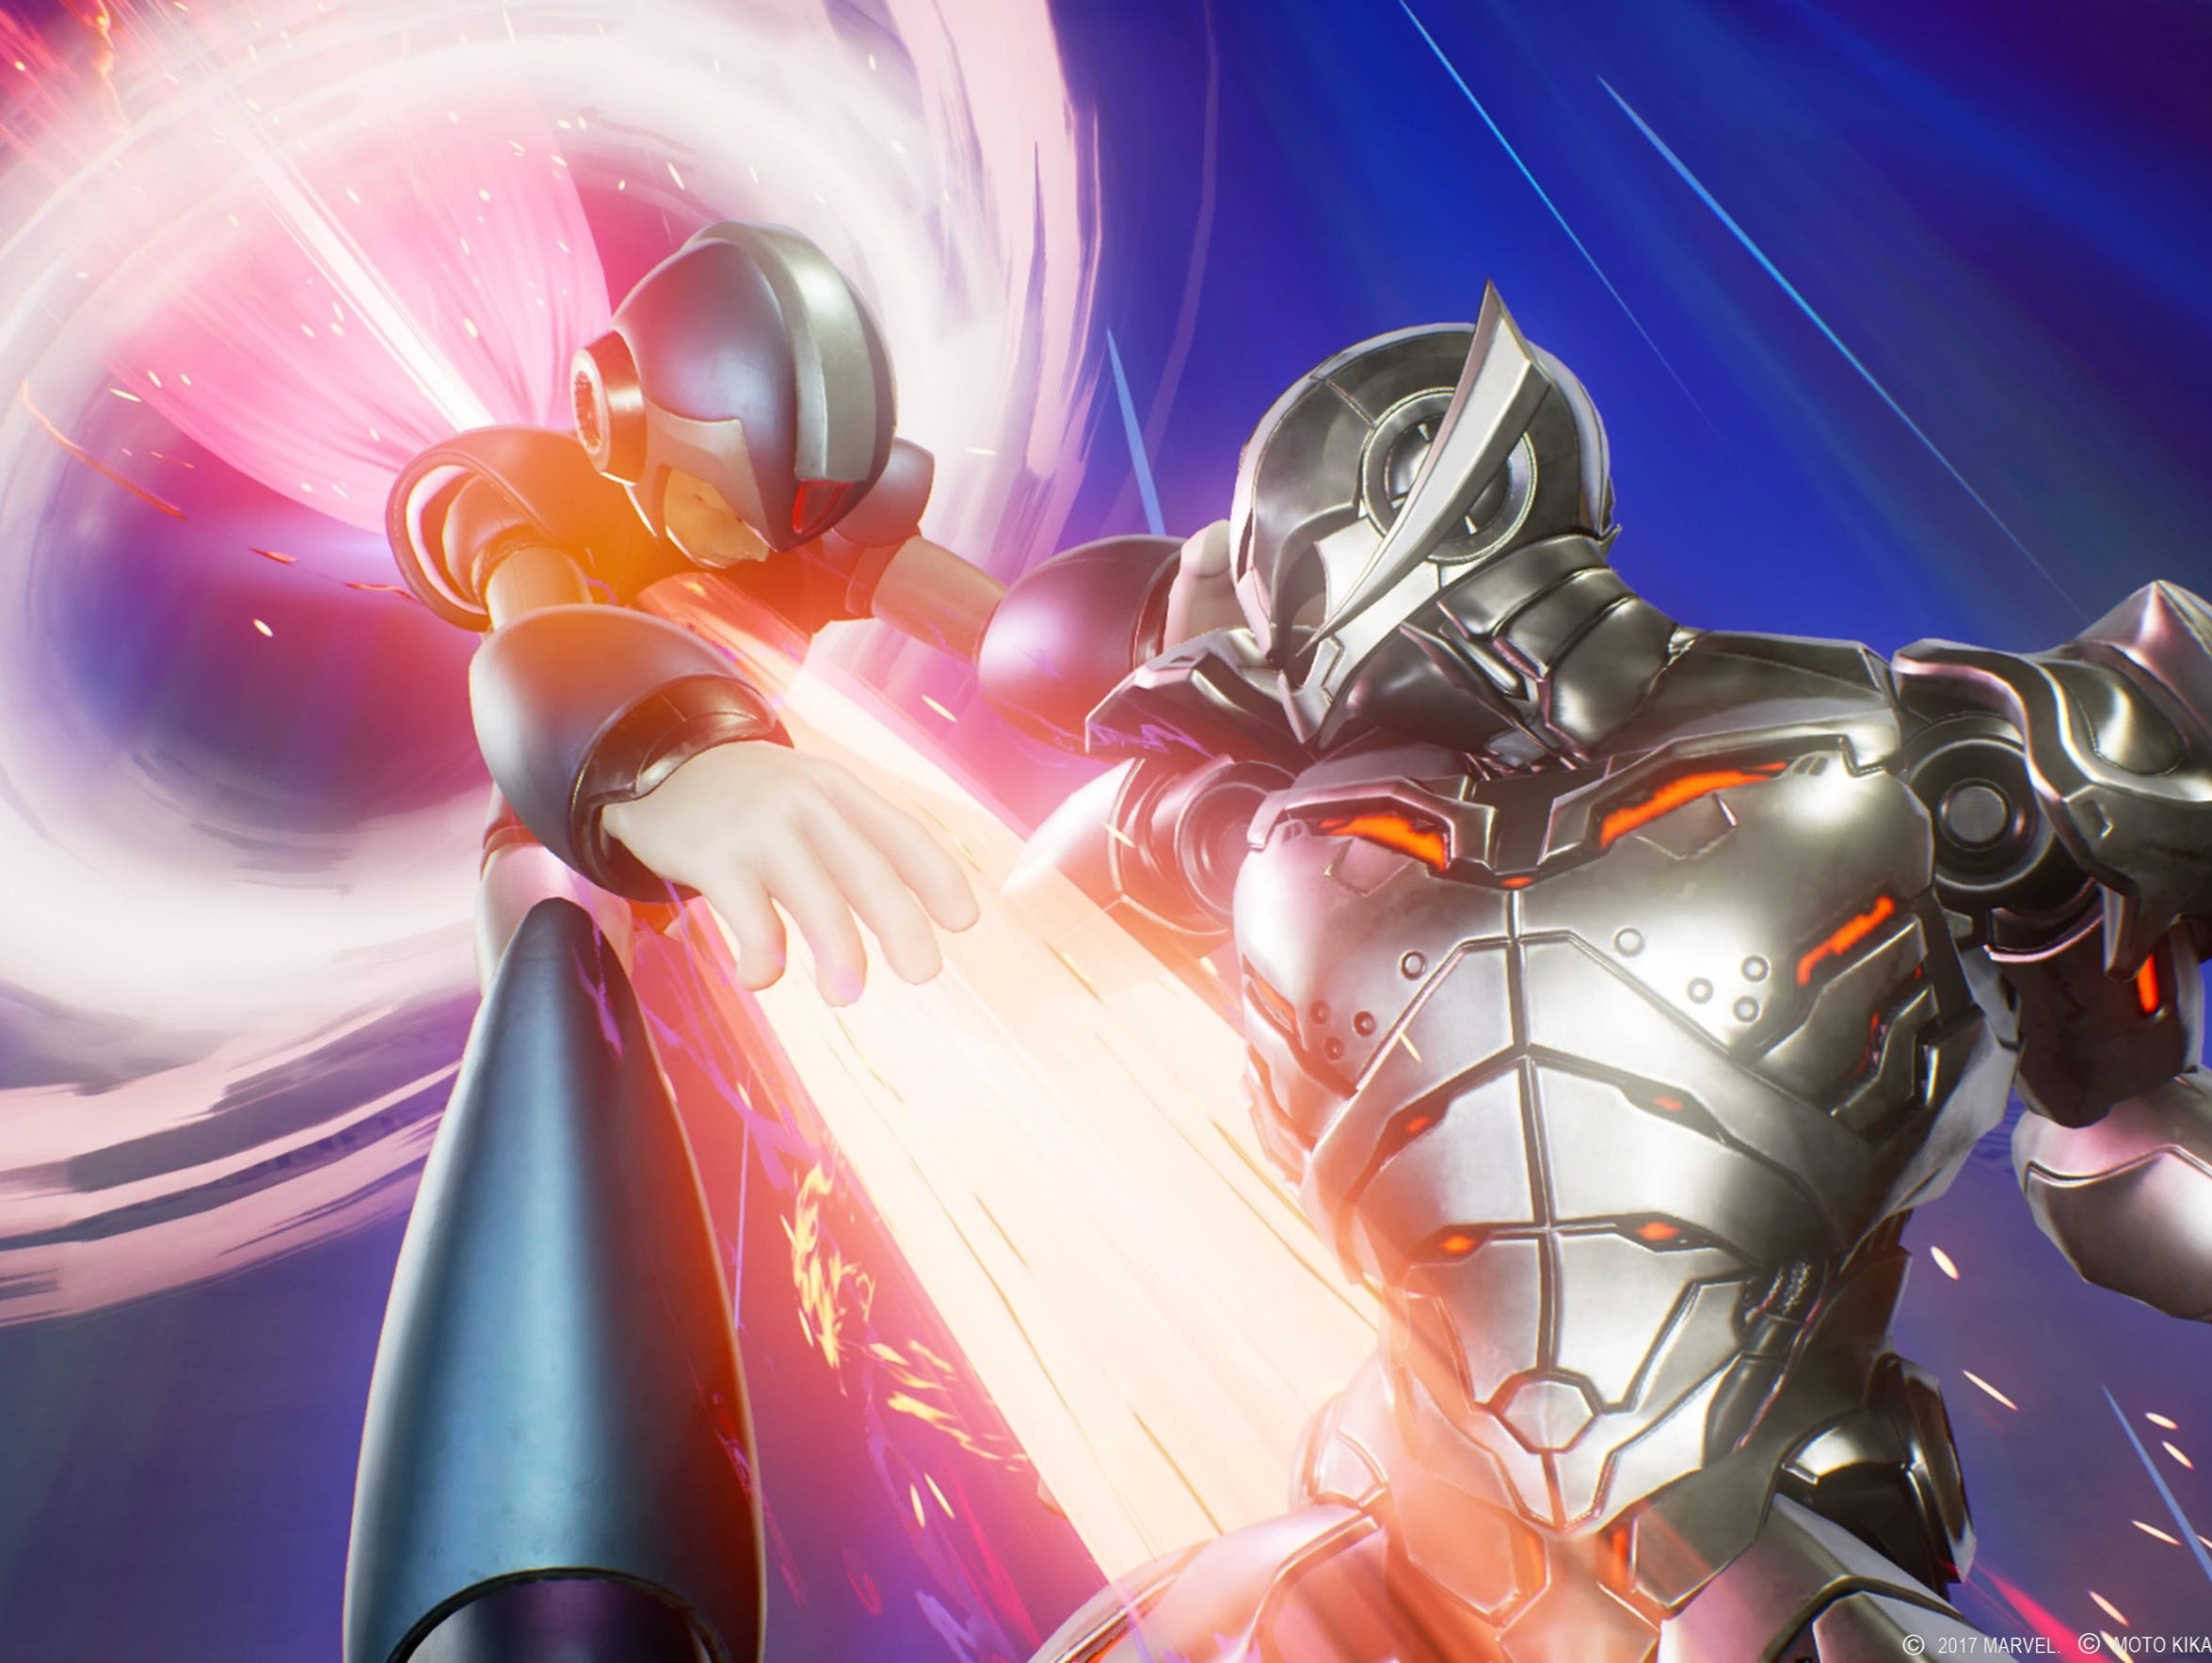 The Marvel vs. Capcom: Infinite universe continues